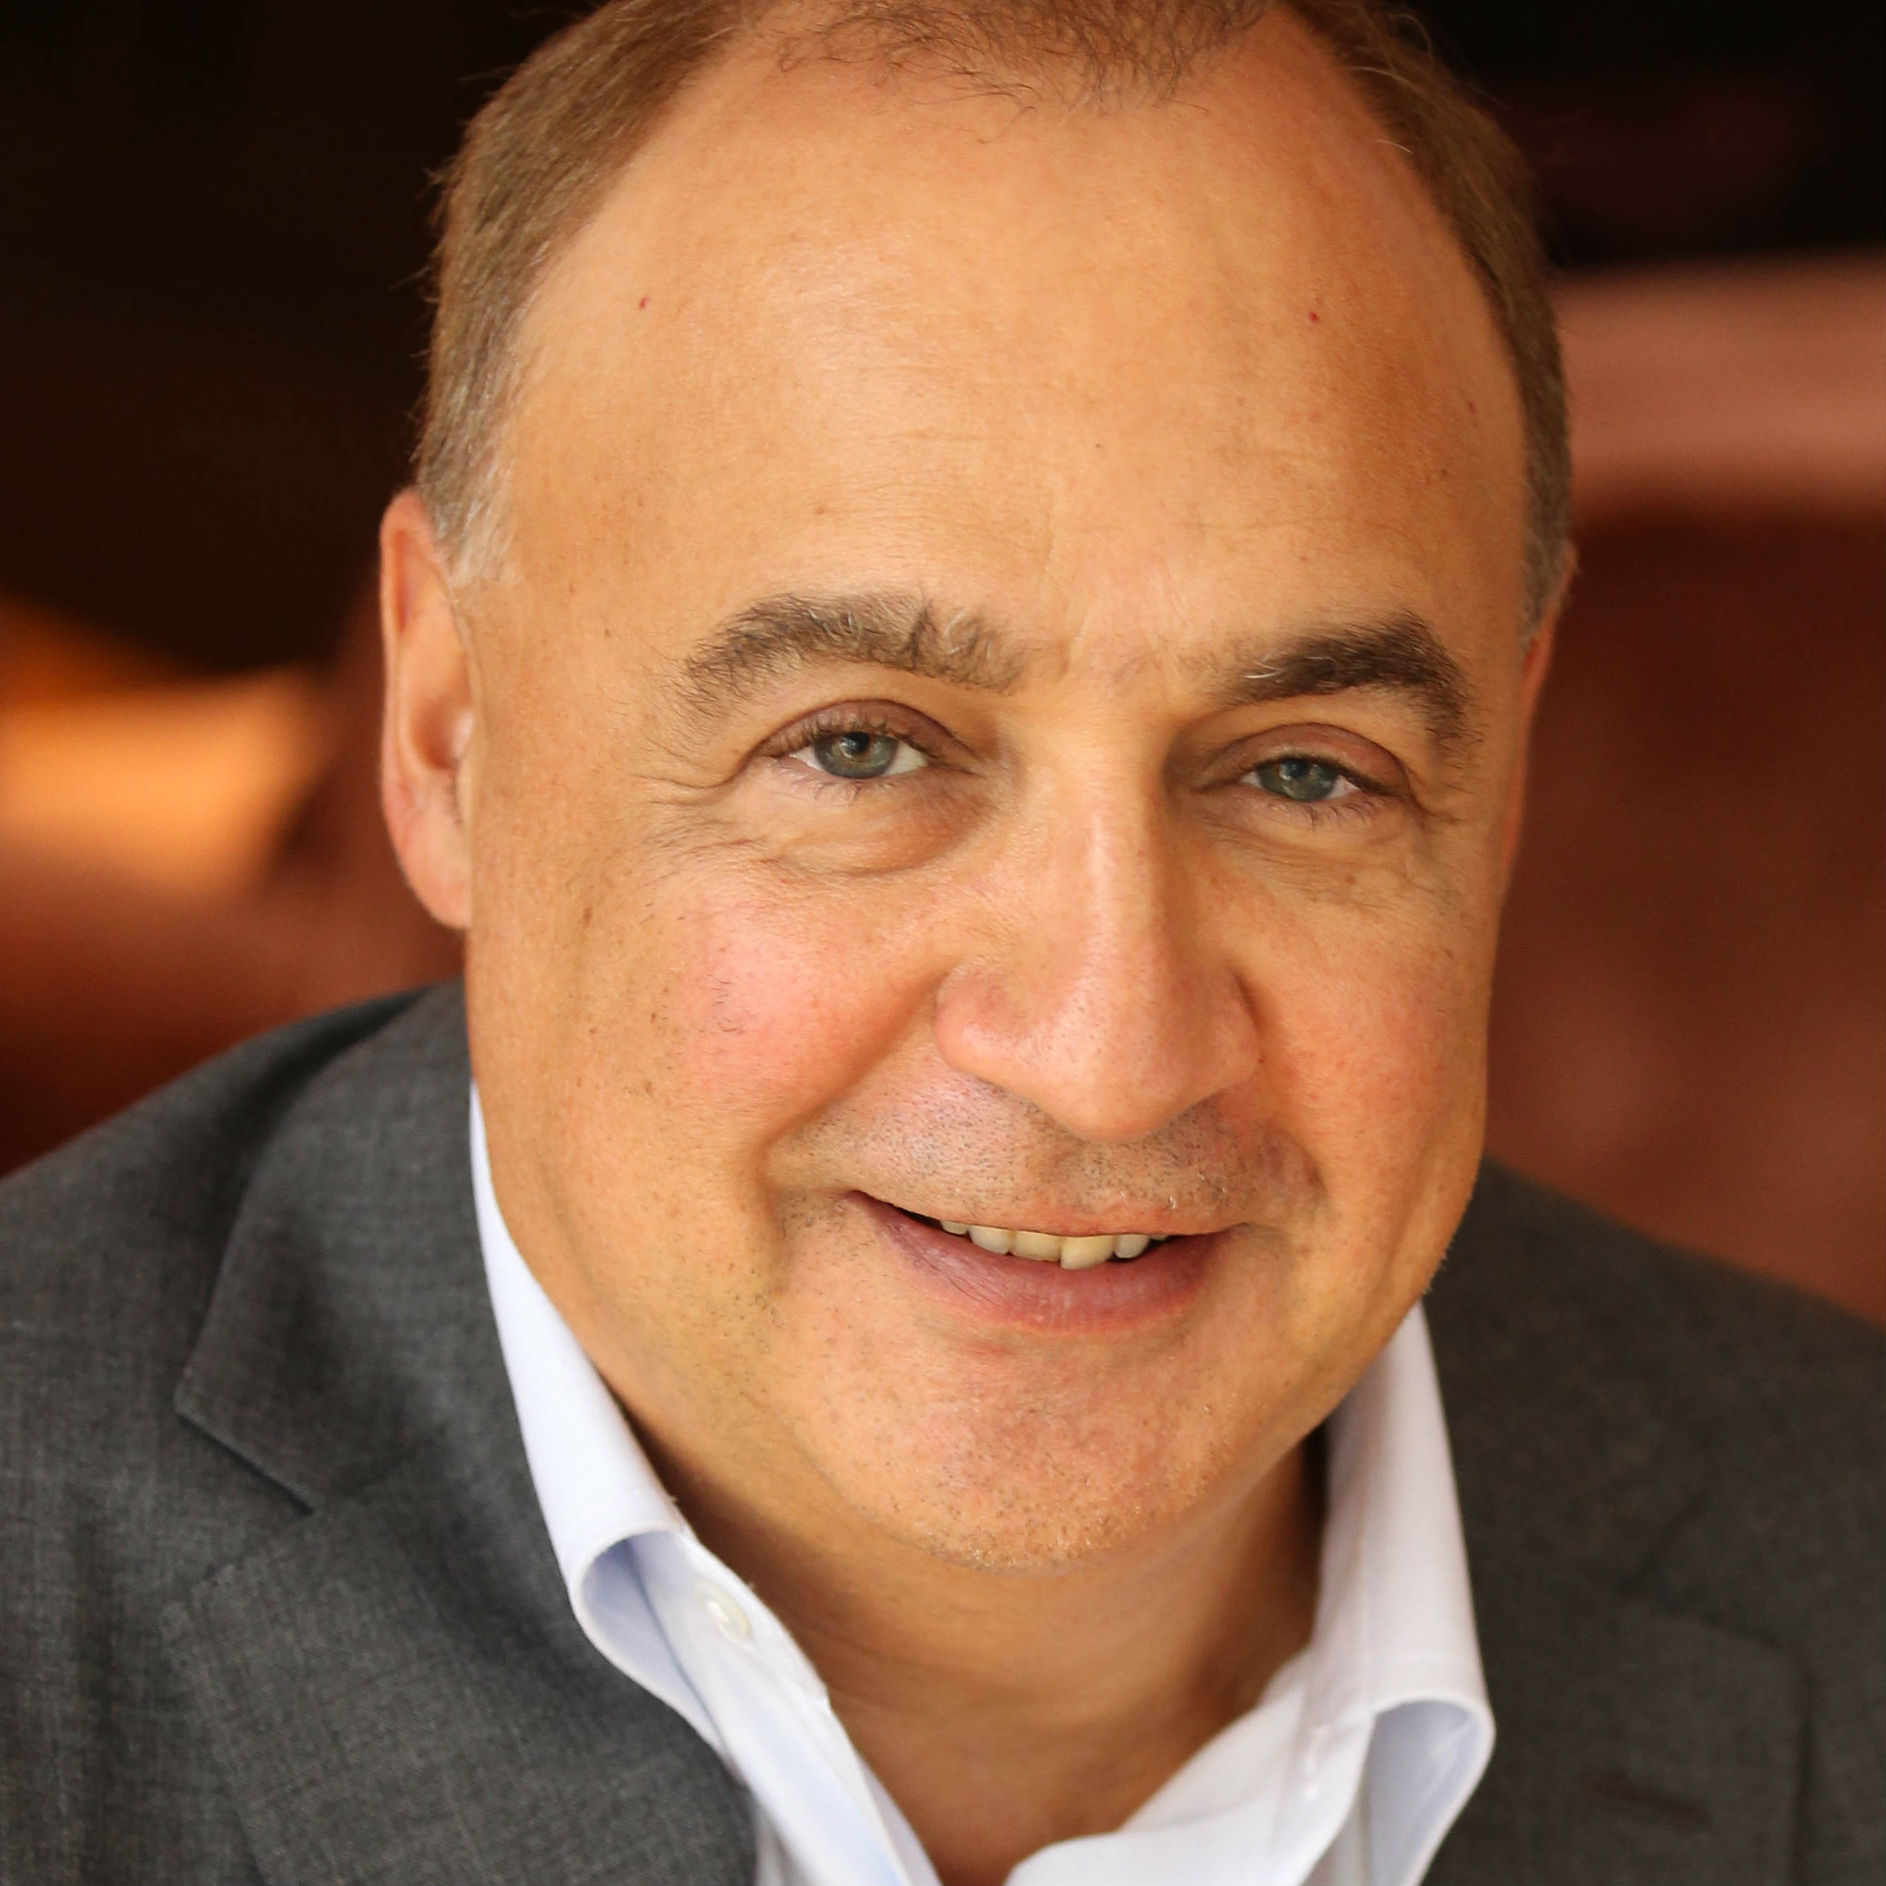 The Blavatnik Family Foundation Announces $20 Million Gift to TAU